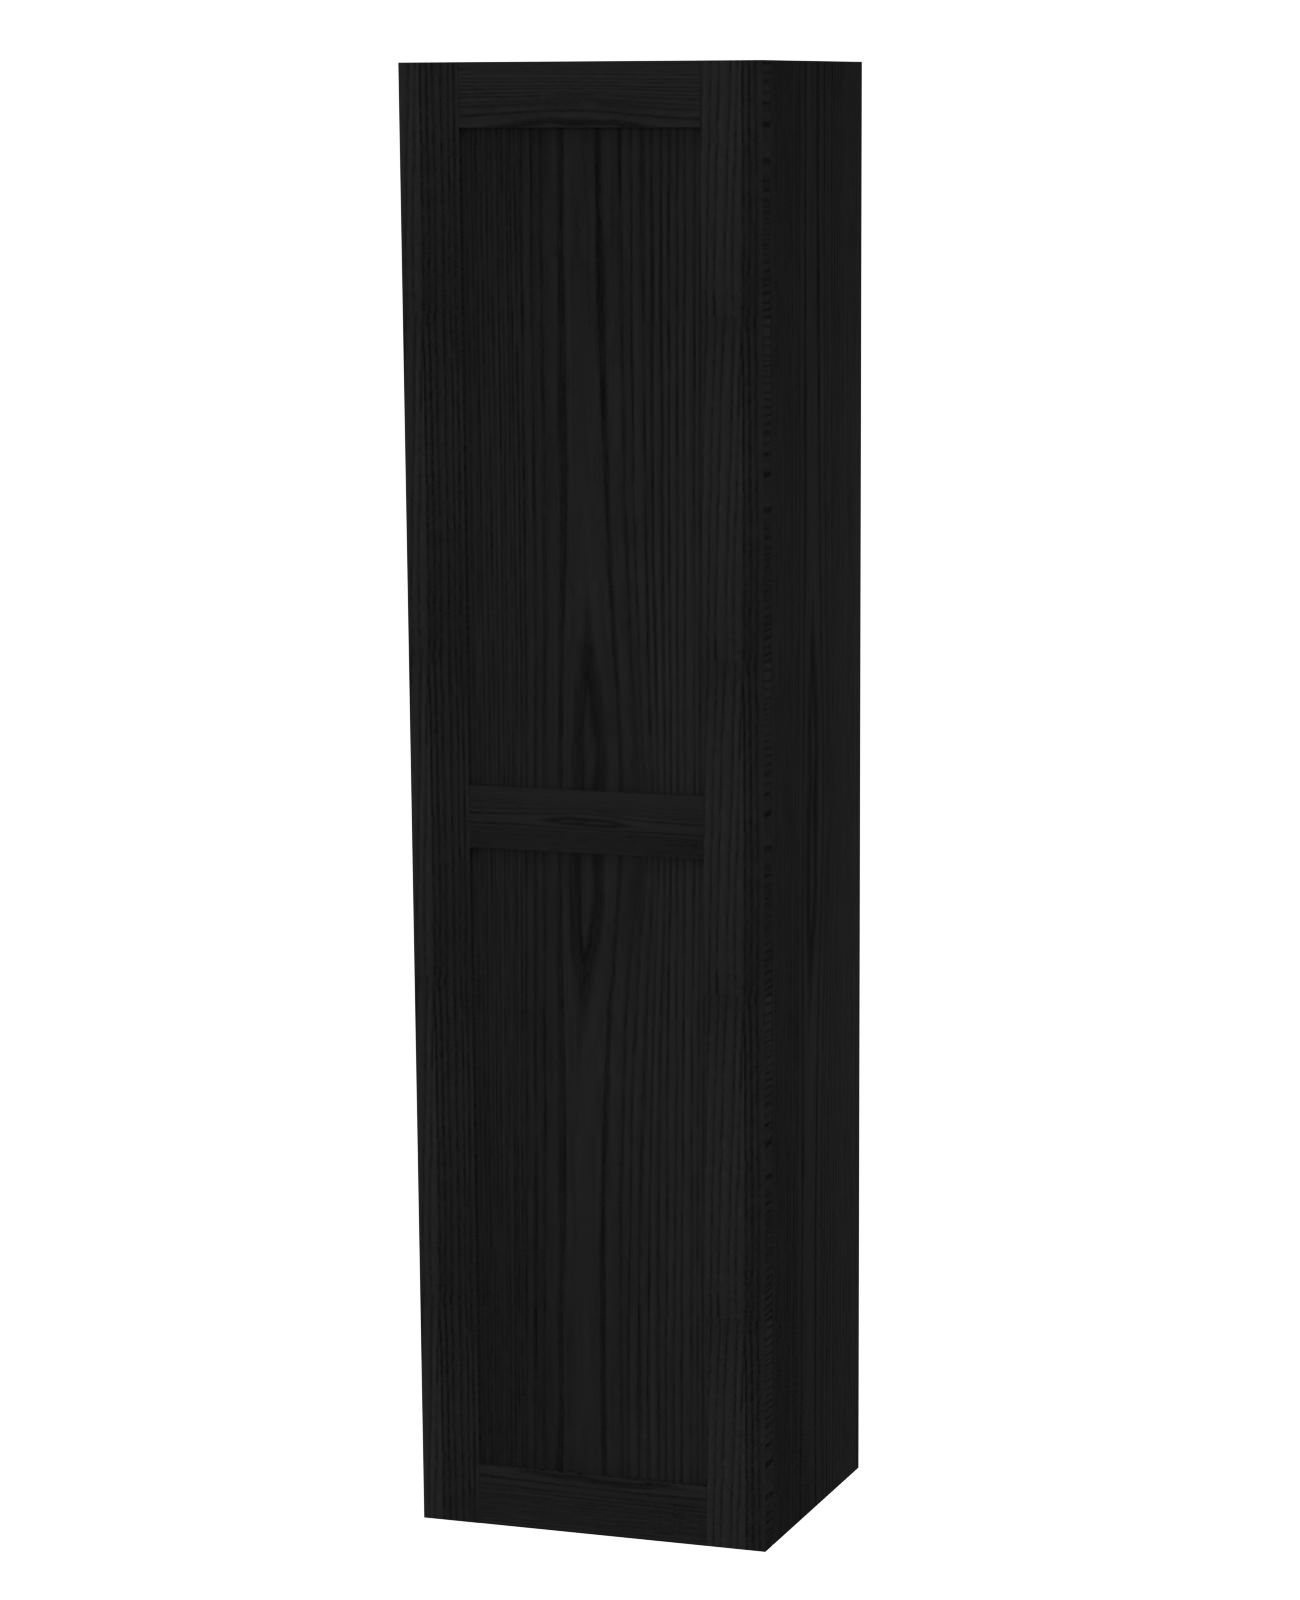 Miller London Black Single Storage Door Tall Cabinet 400 x